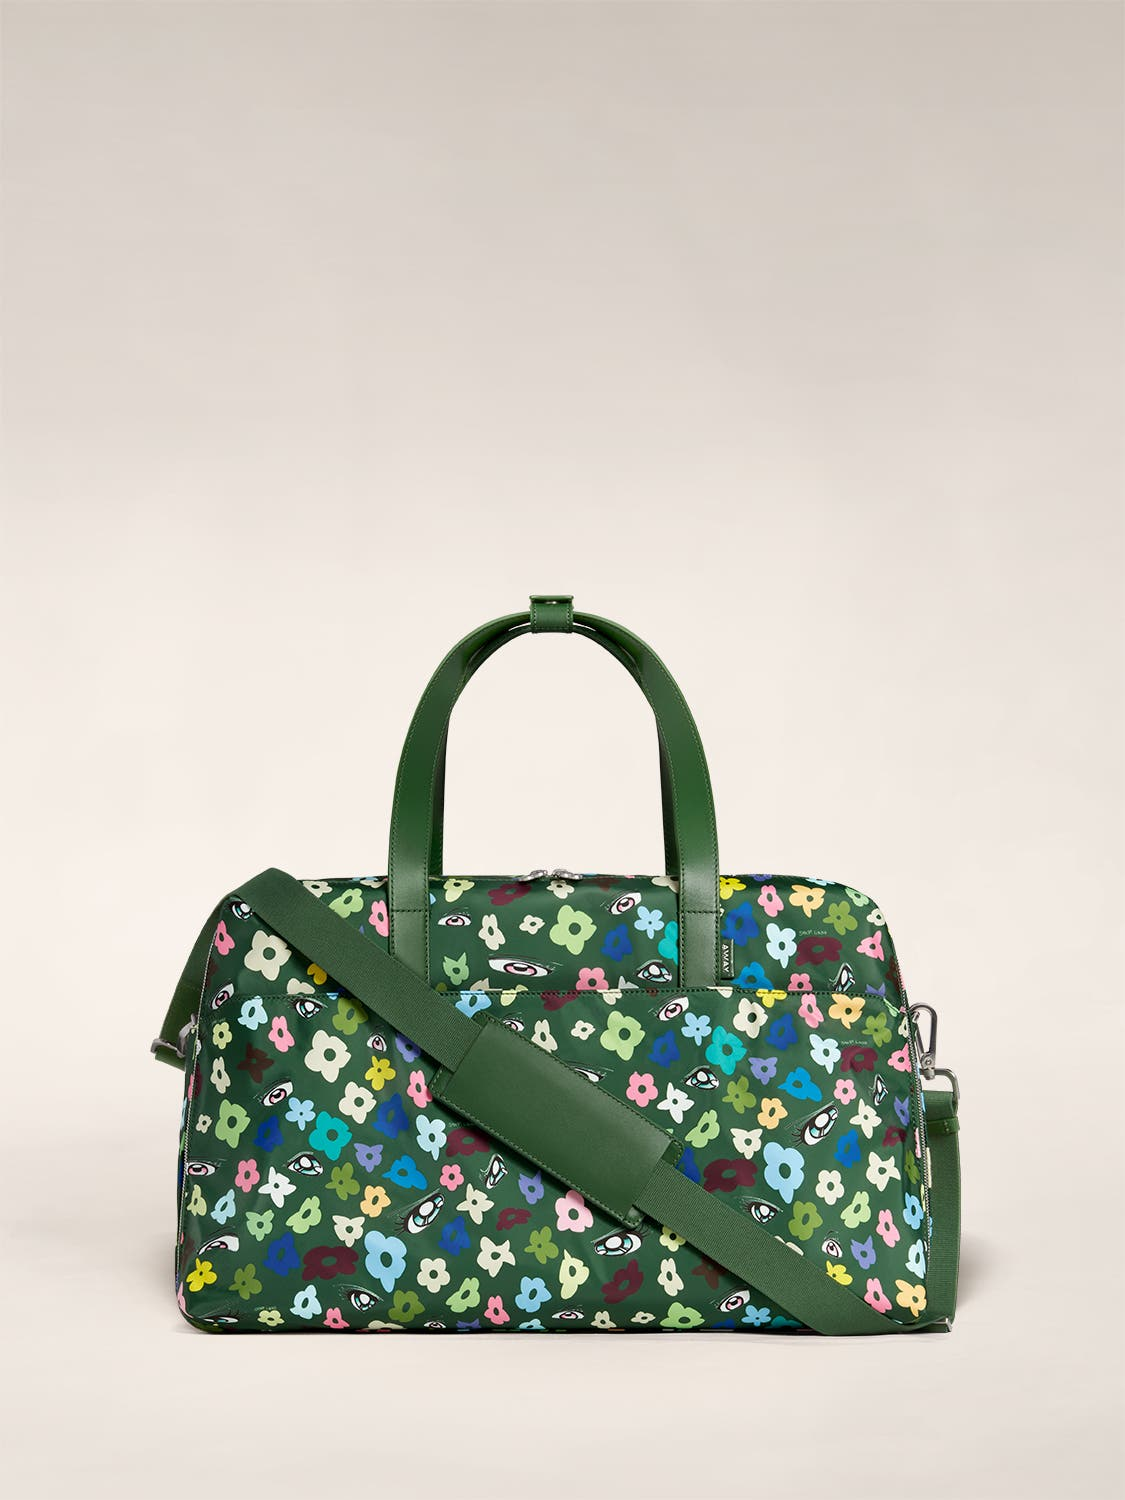 The Large Everywhere Bag by Sandy Liang in green floral print and a shoulder strap